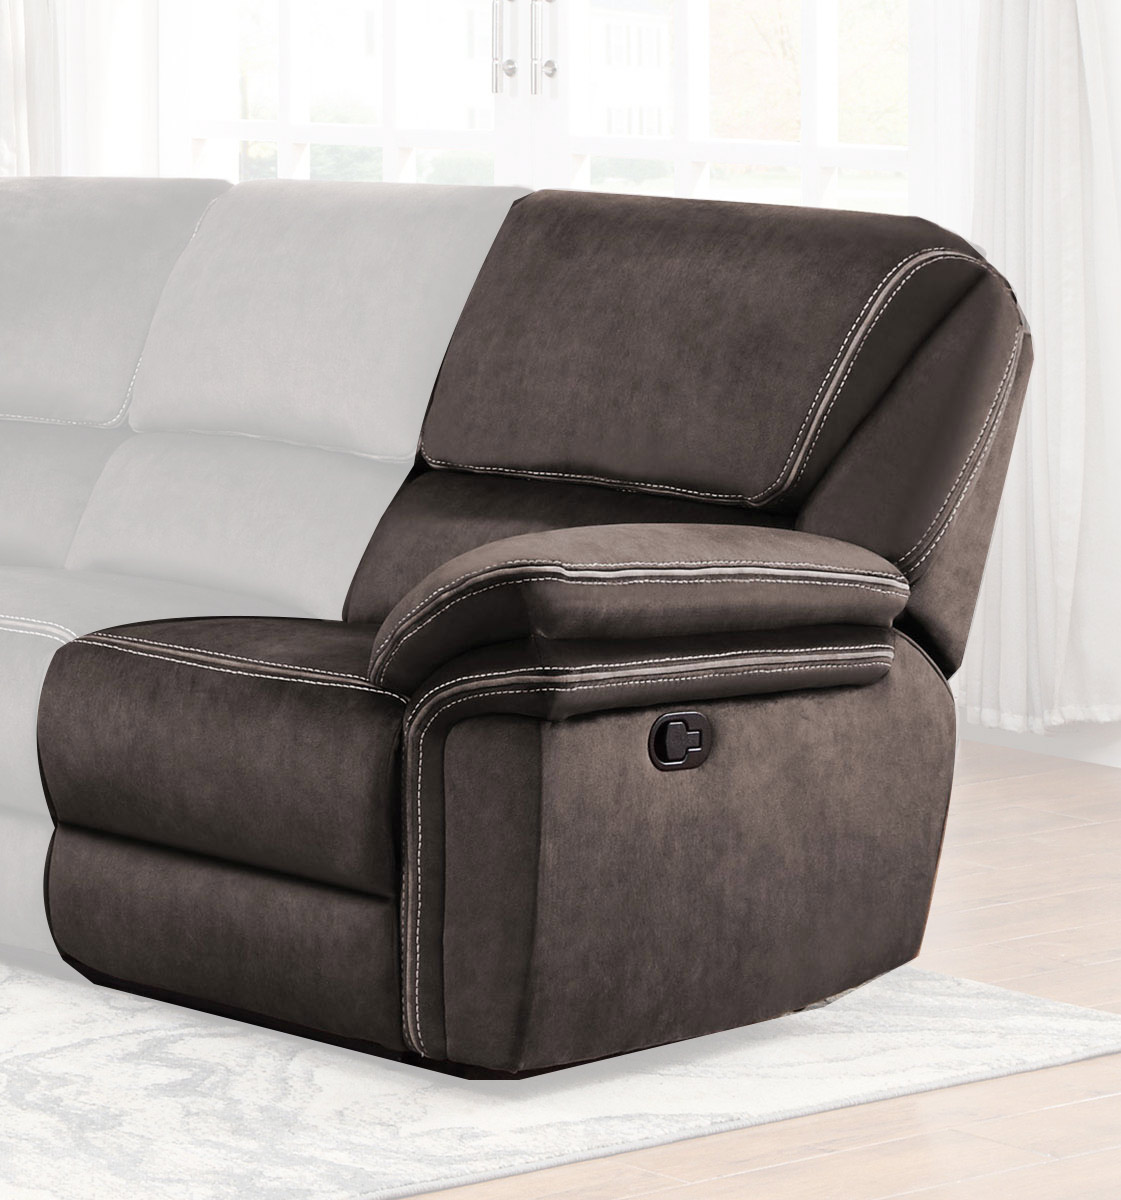 Homelegance Bronagh Right Side Reclining Love Seat - Chocolate